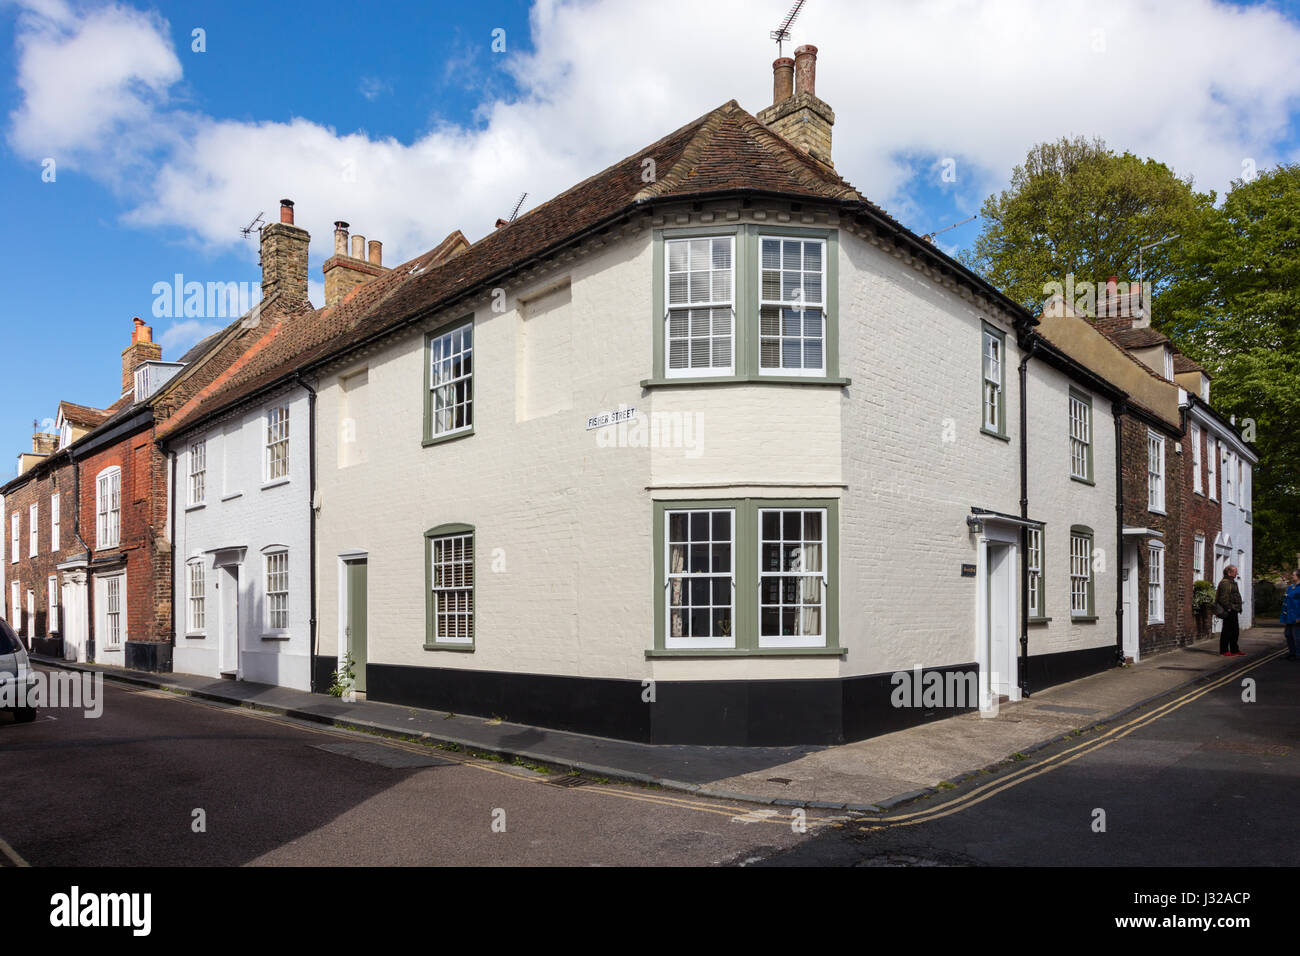 Historic Building on the Corner of Church Street and Fisher Street, Sandwich, Kent, UK - Stock Image